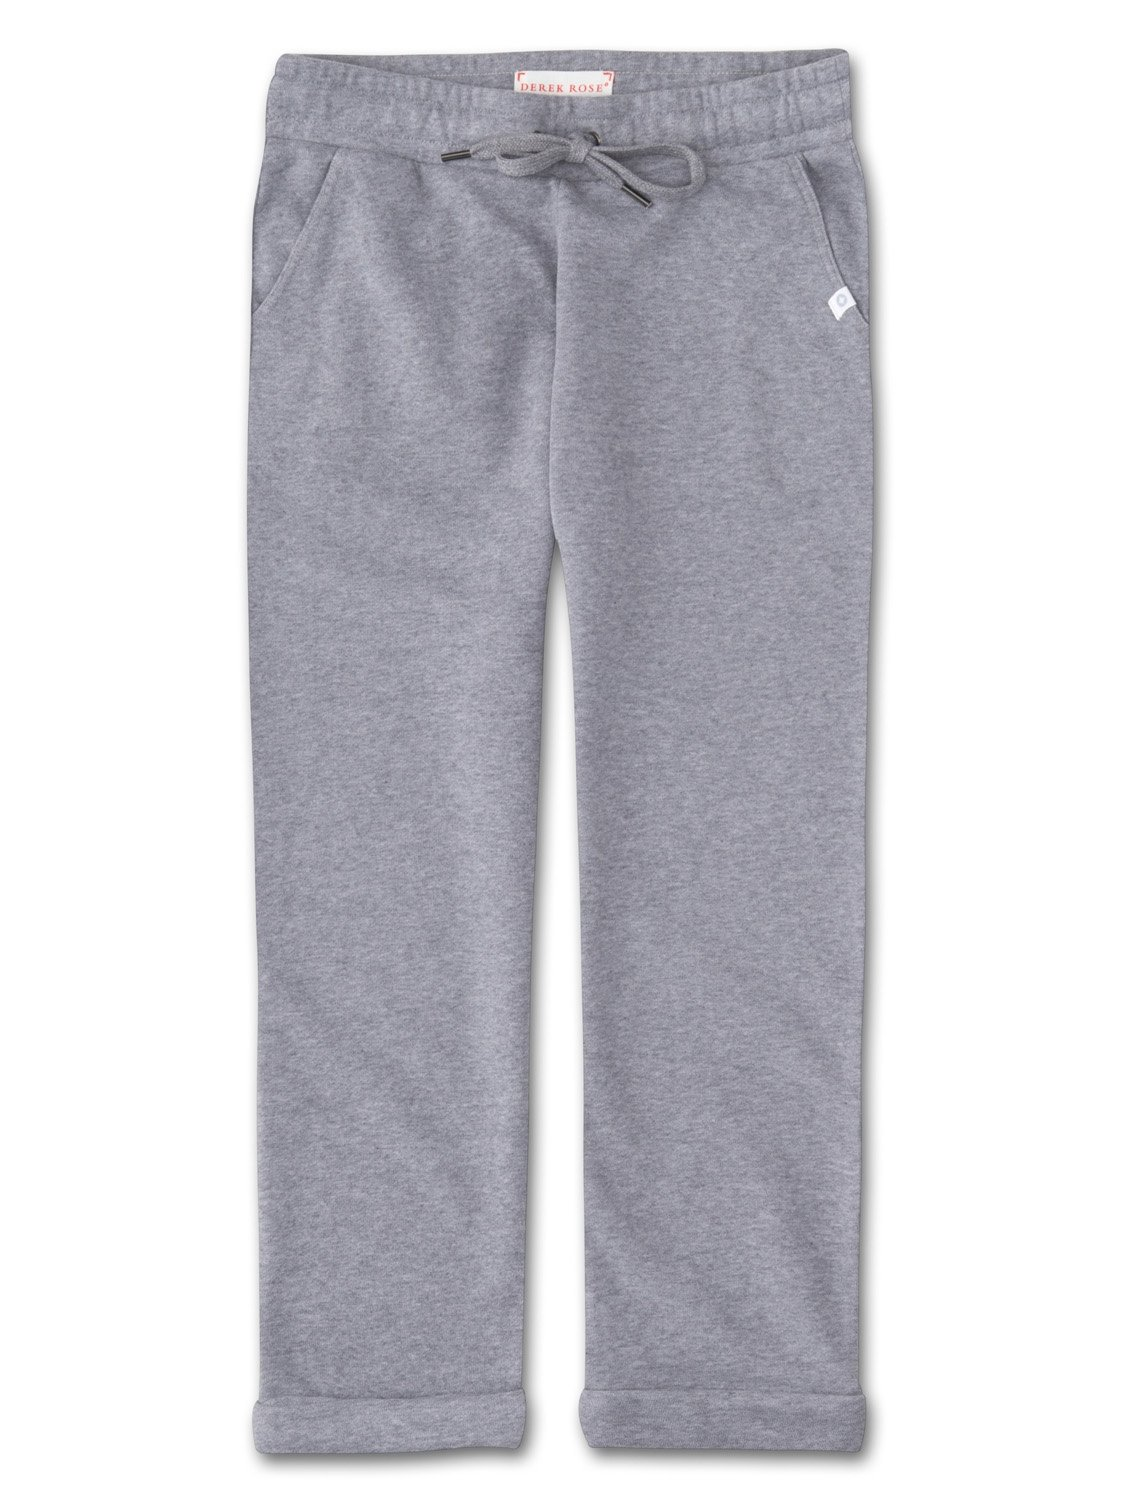 Women's Cropped Leisure Pant Devon Loopback Cotton Silver